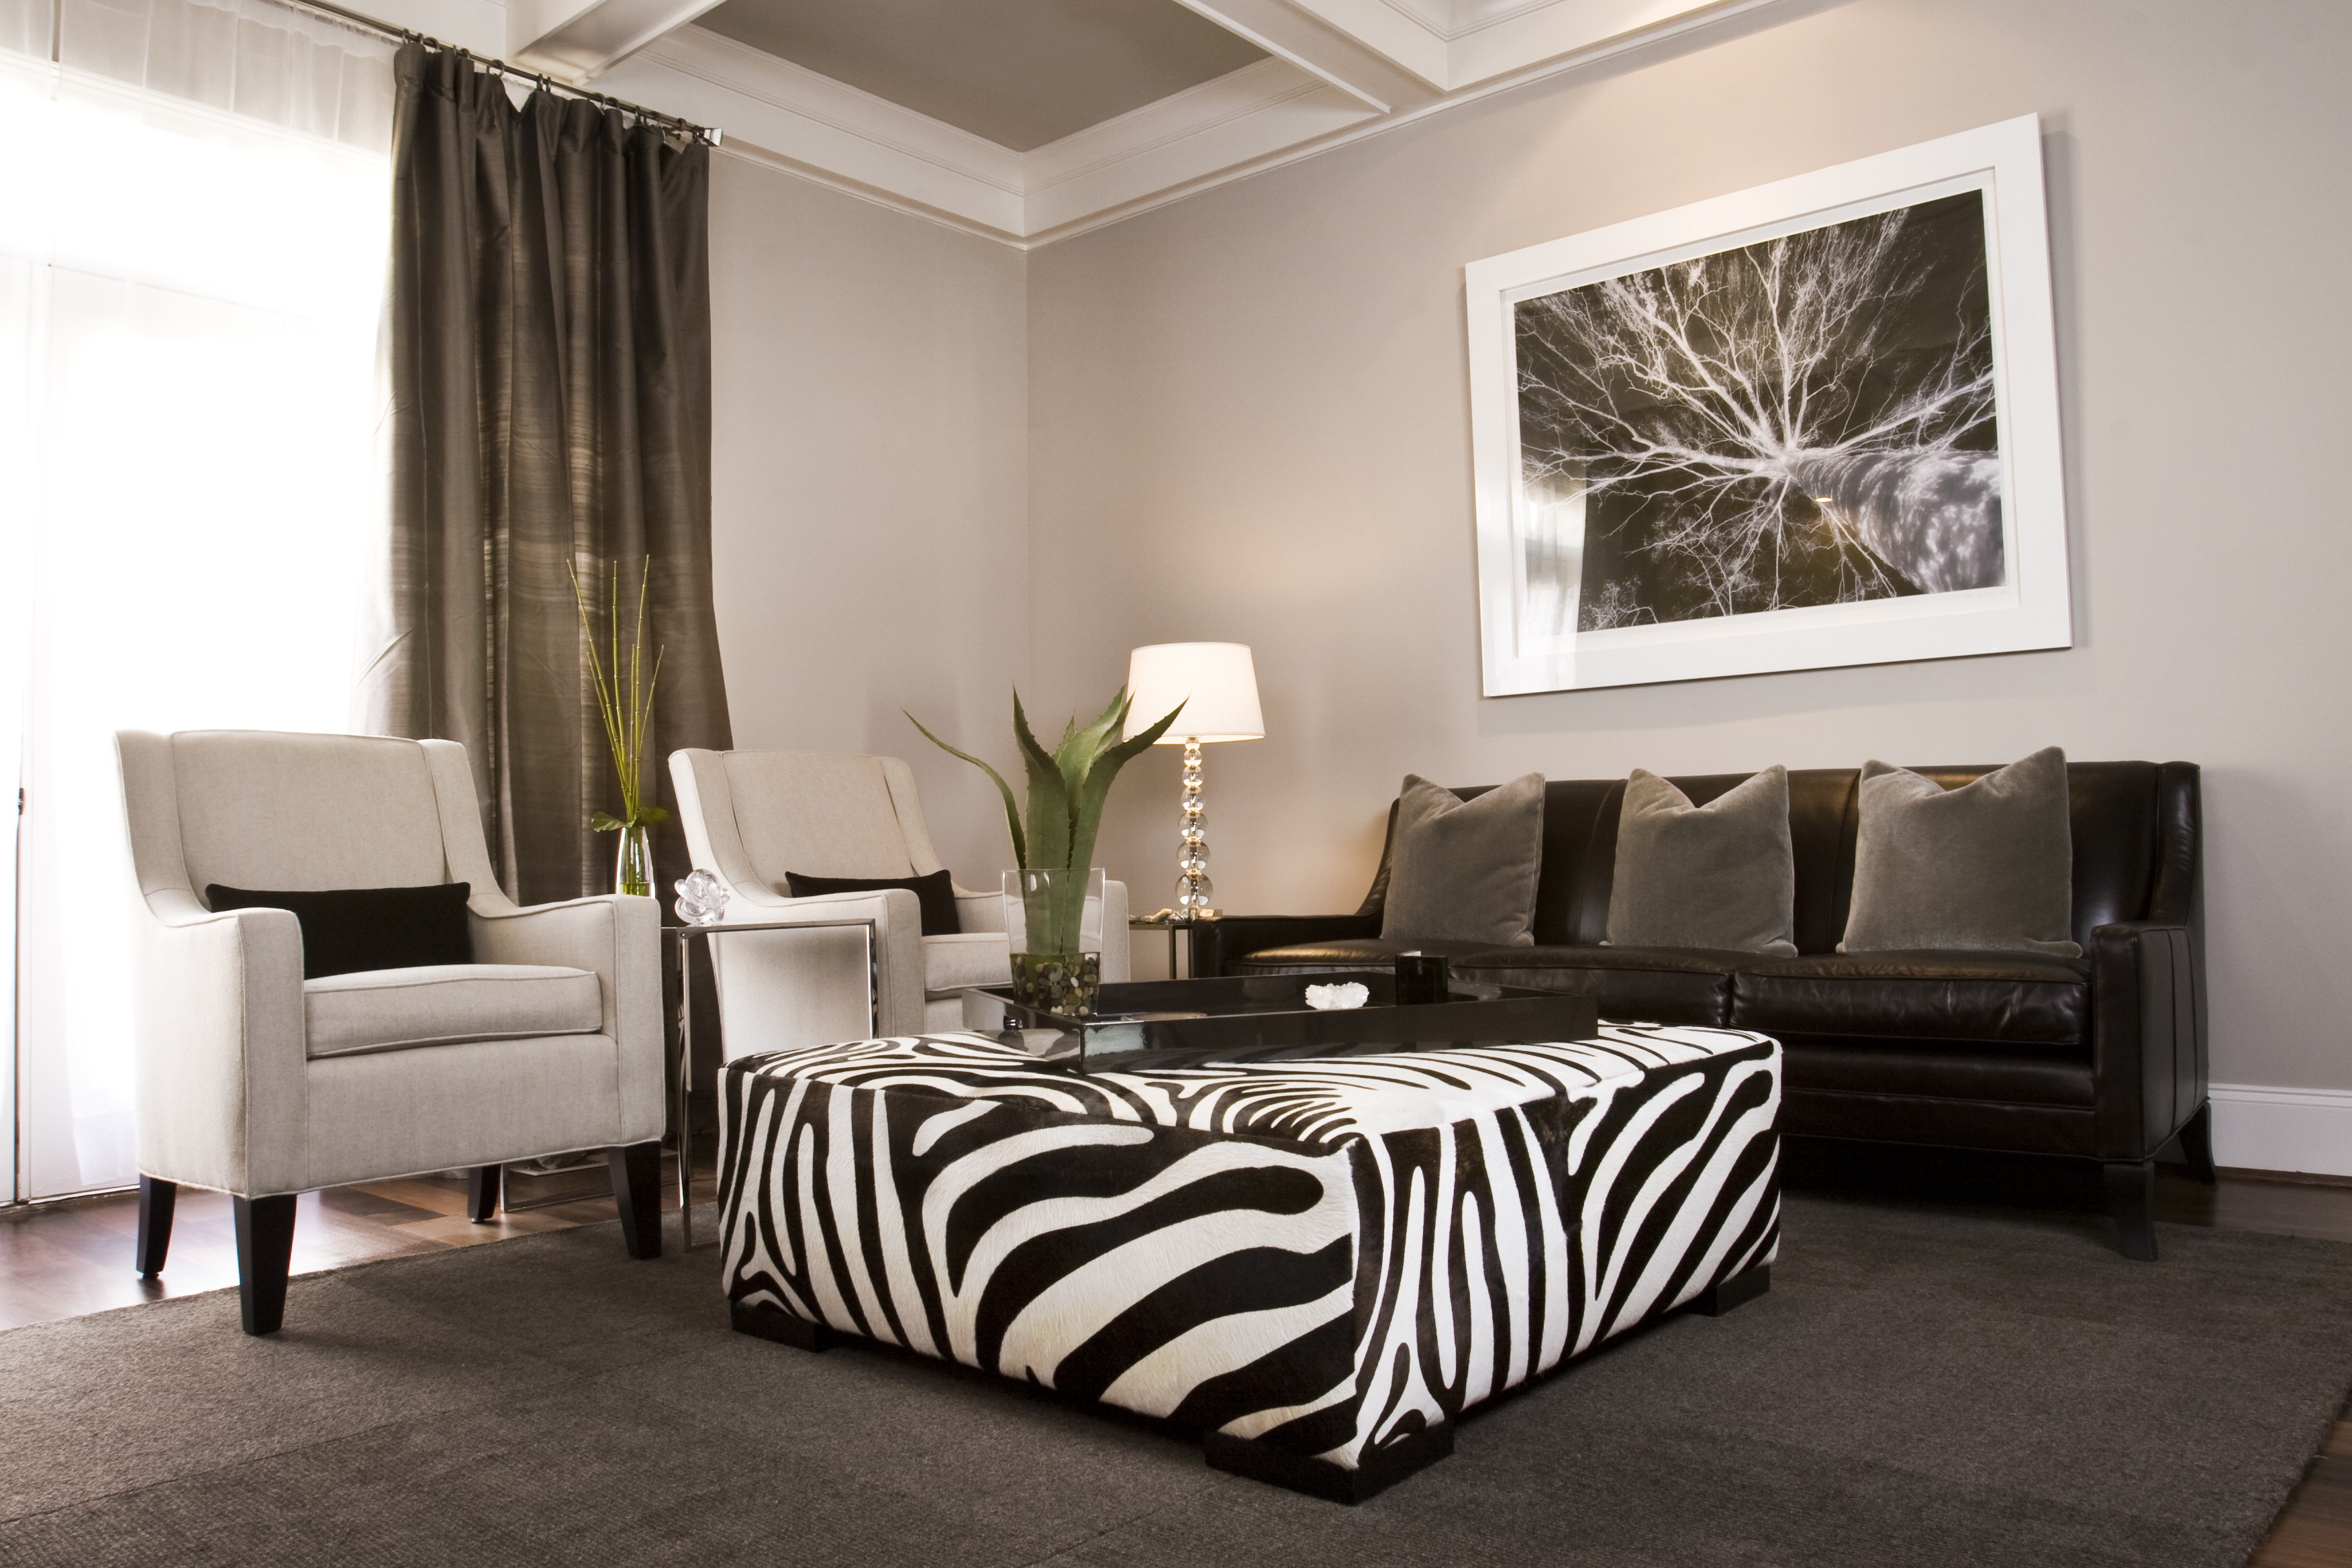 Modern Small Living Room With Luxury Nuance (Image 25 of 32)